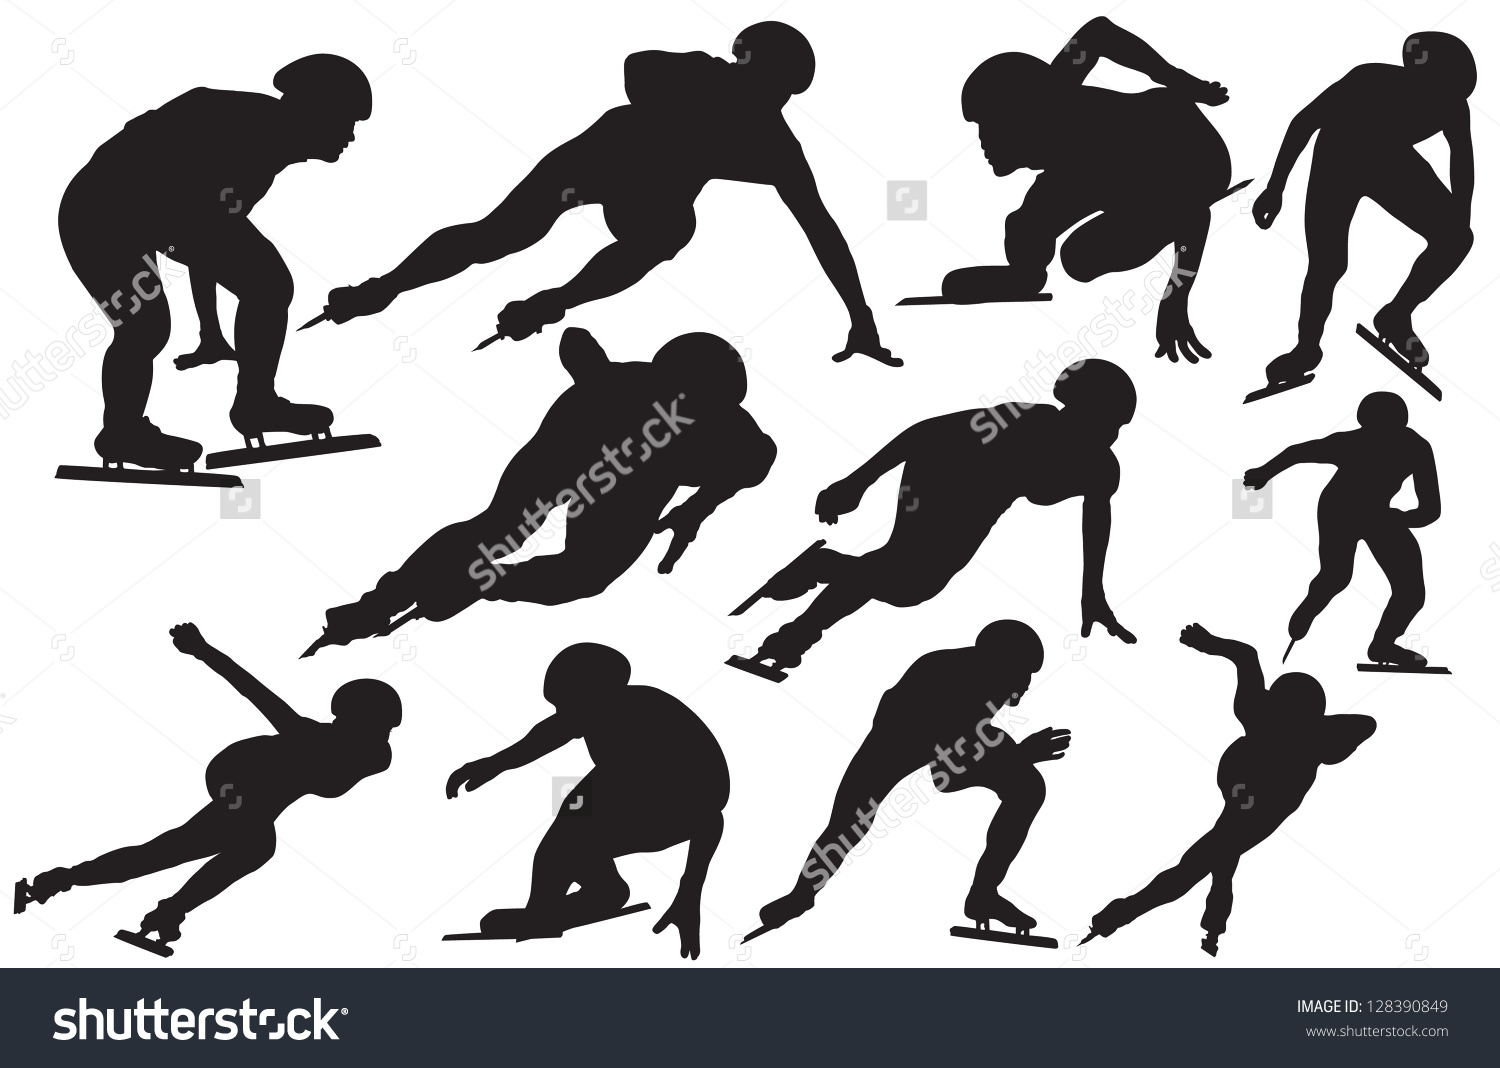 Inline speed skating clipart svg freeuse library Speed Skating Silhouette Stock Vector 128390849 - Shutterstock svg freeuse library